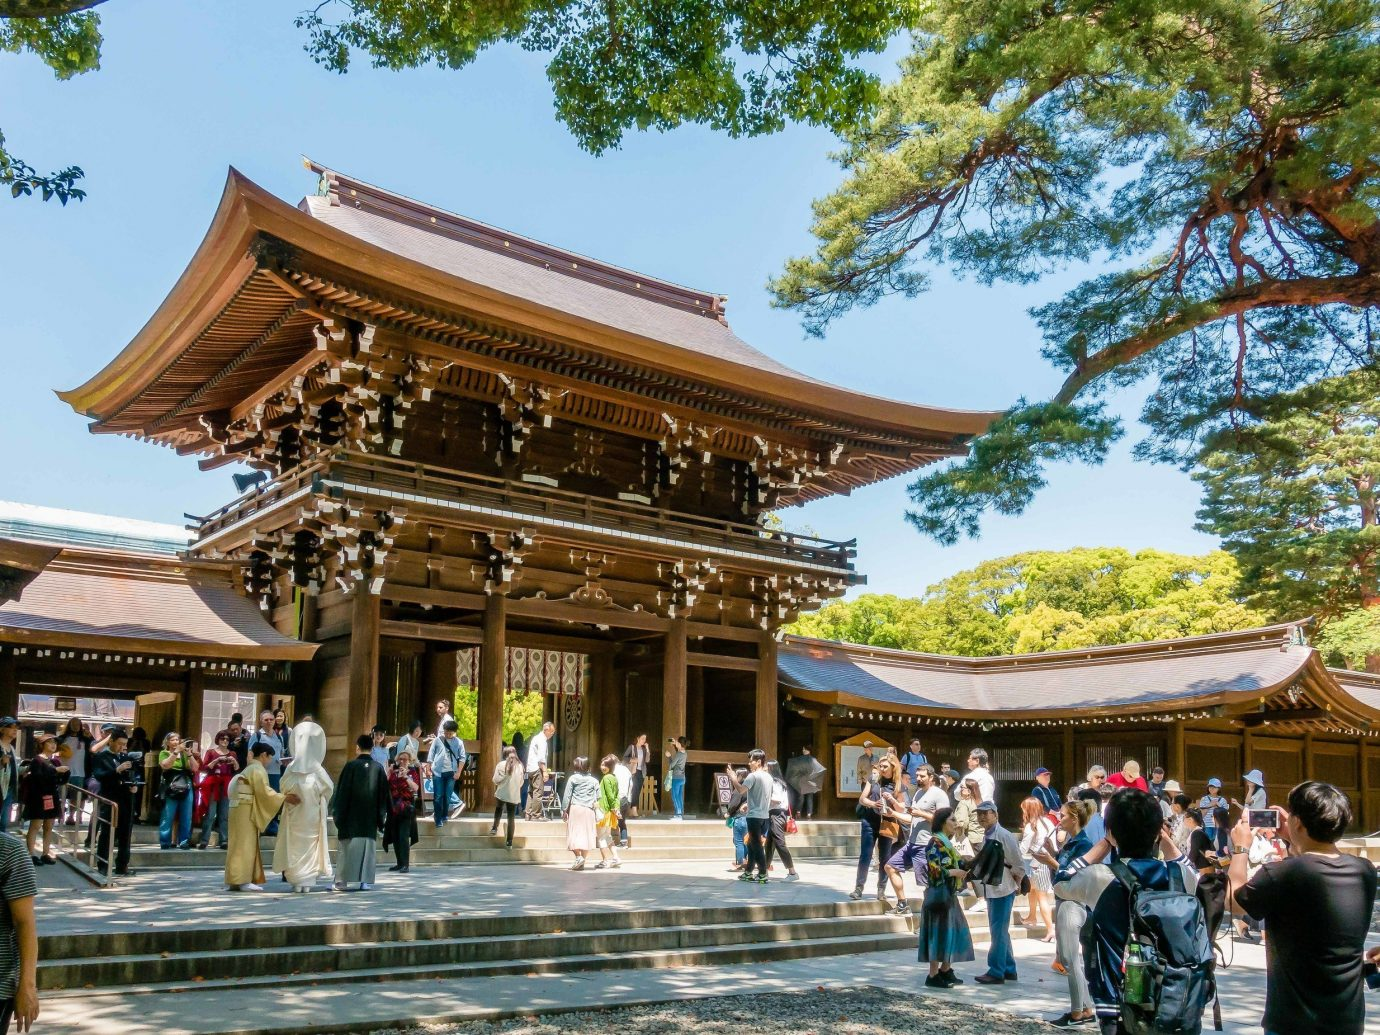 Trip Ideas tree outdoor sky chinese architecture people japanese architecture shinto shrine shrine person walking pagoda temple group leisure place of worship tourism historic site plant crowd square several colonnade